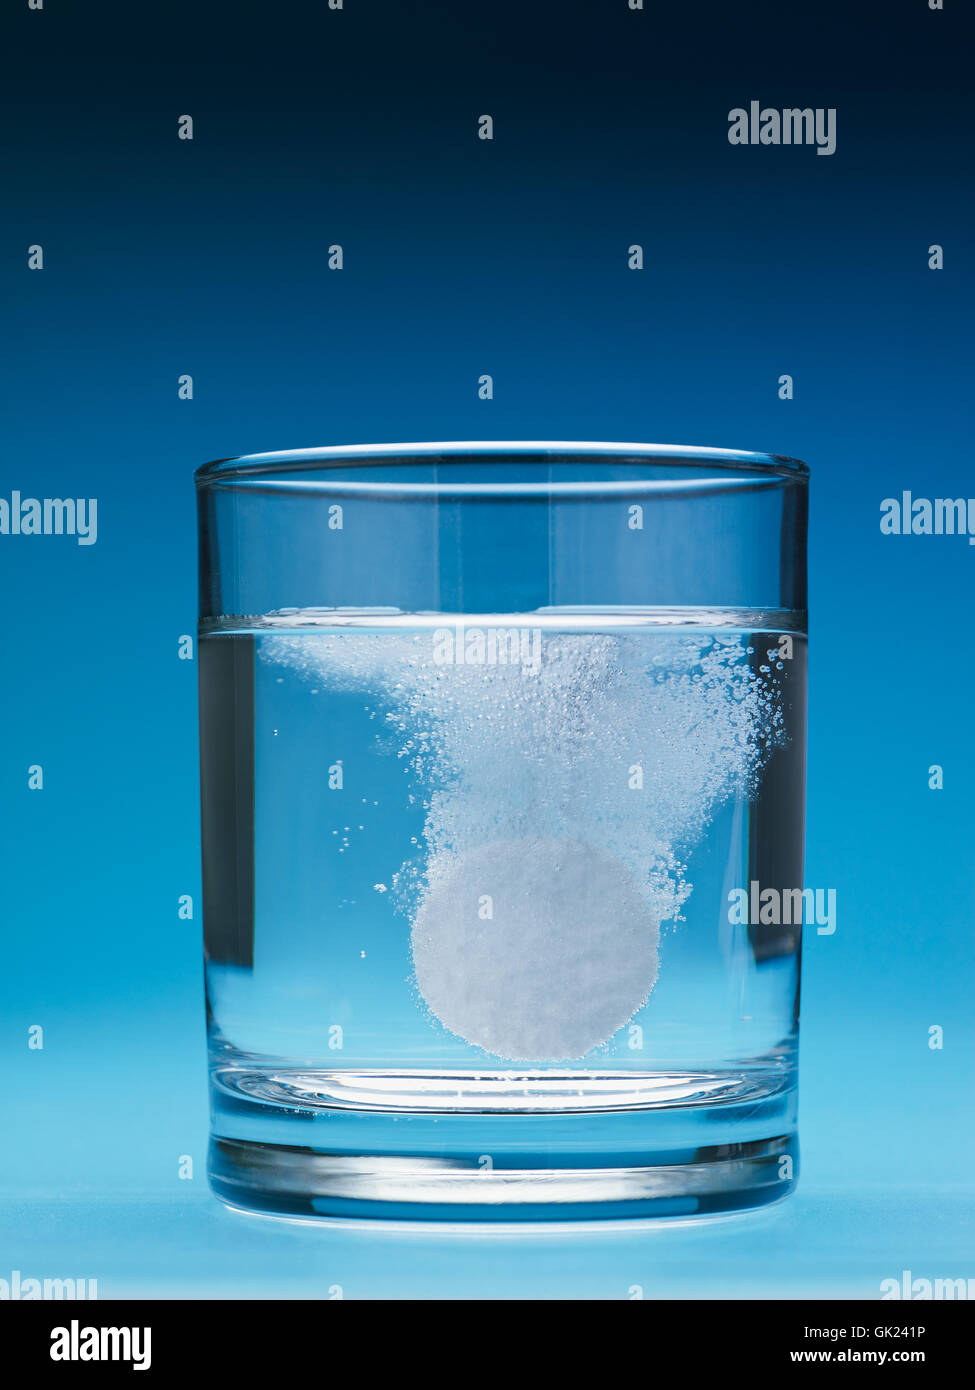 blue glass chalice - Stock Image